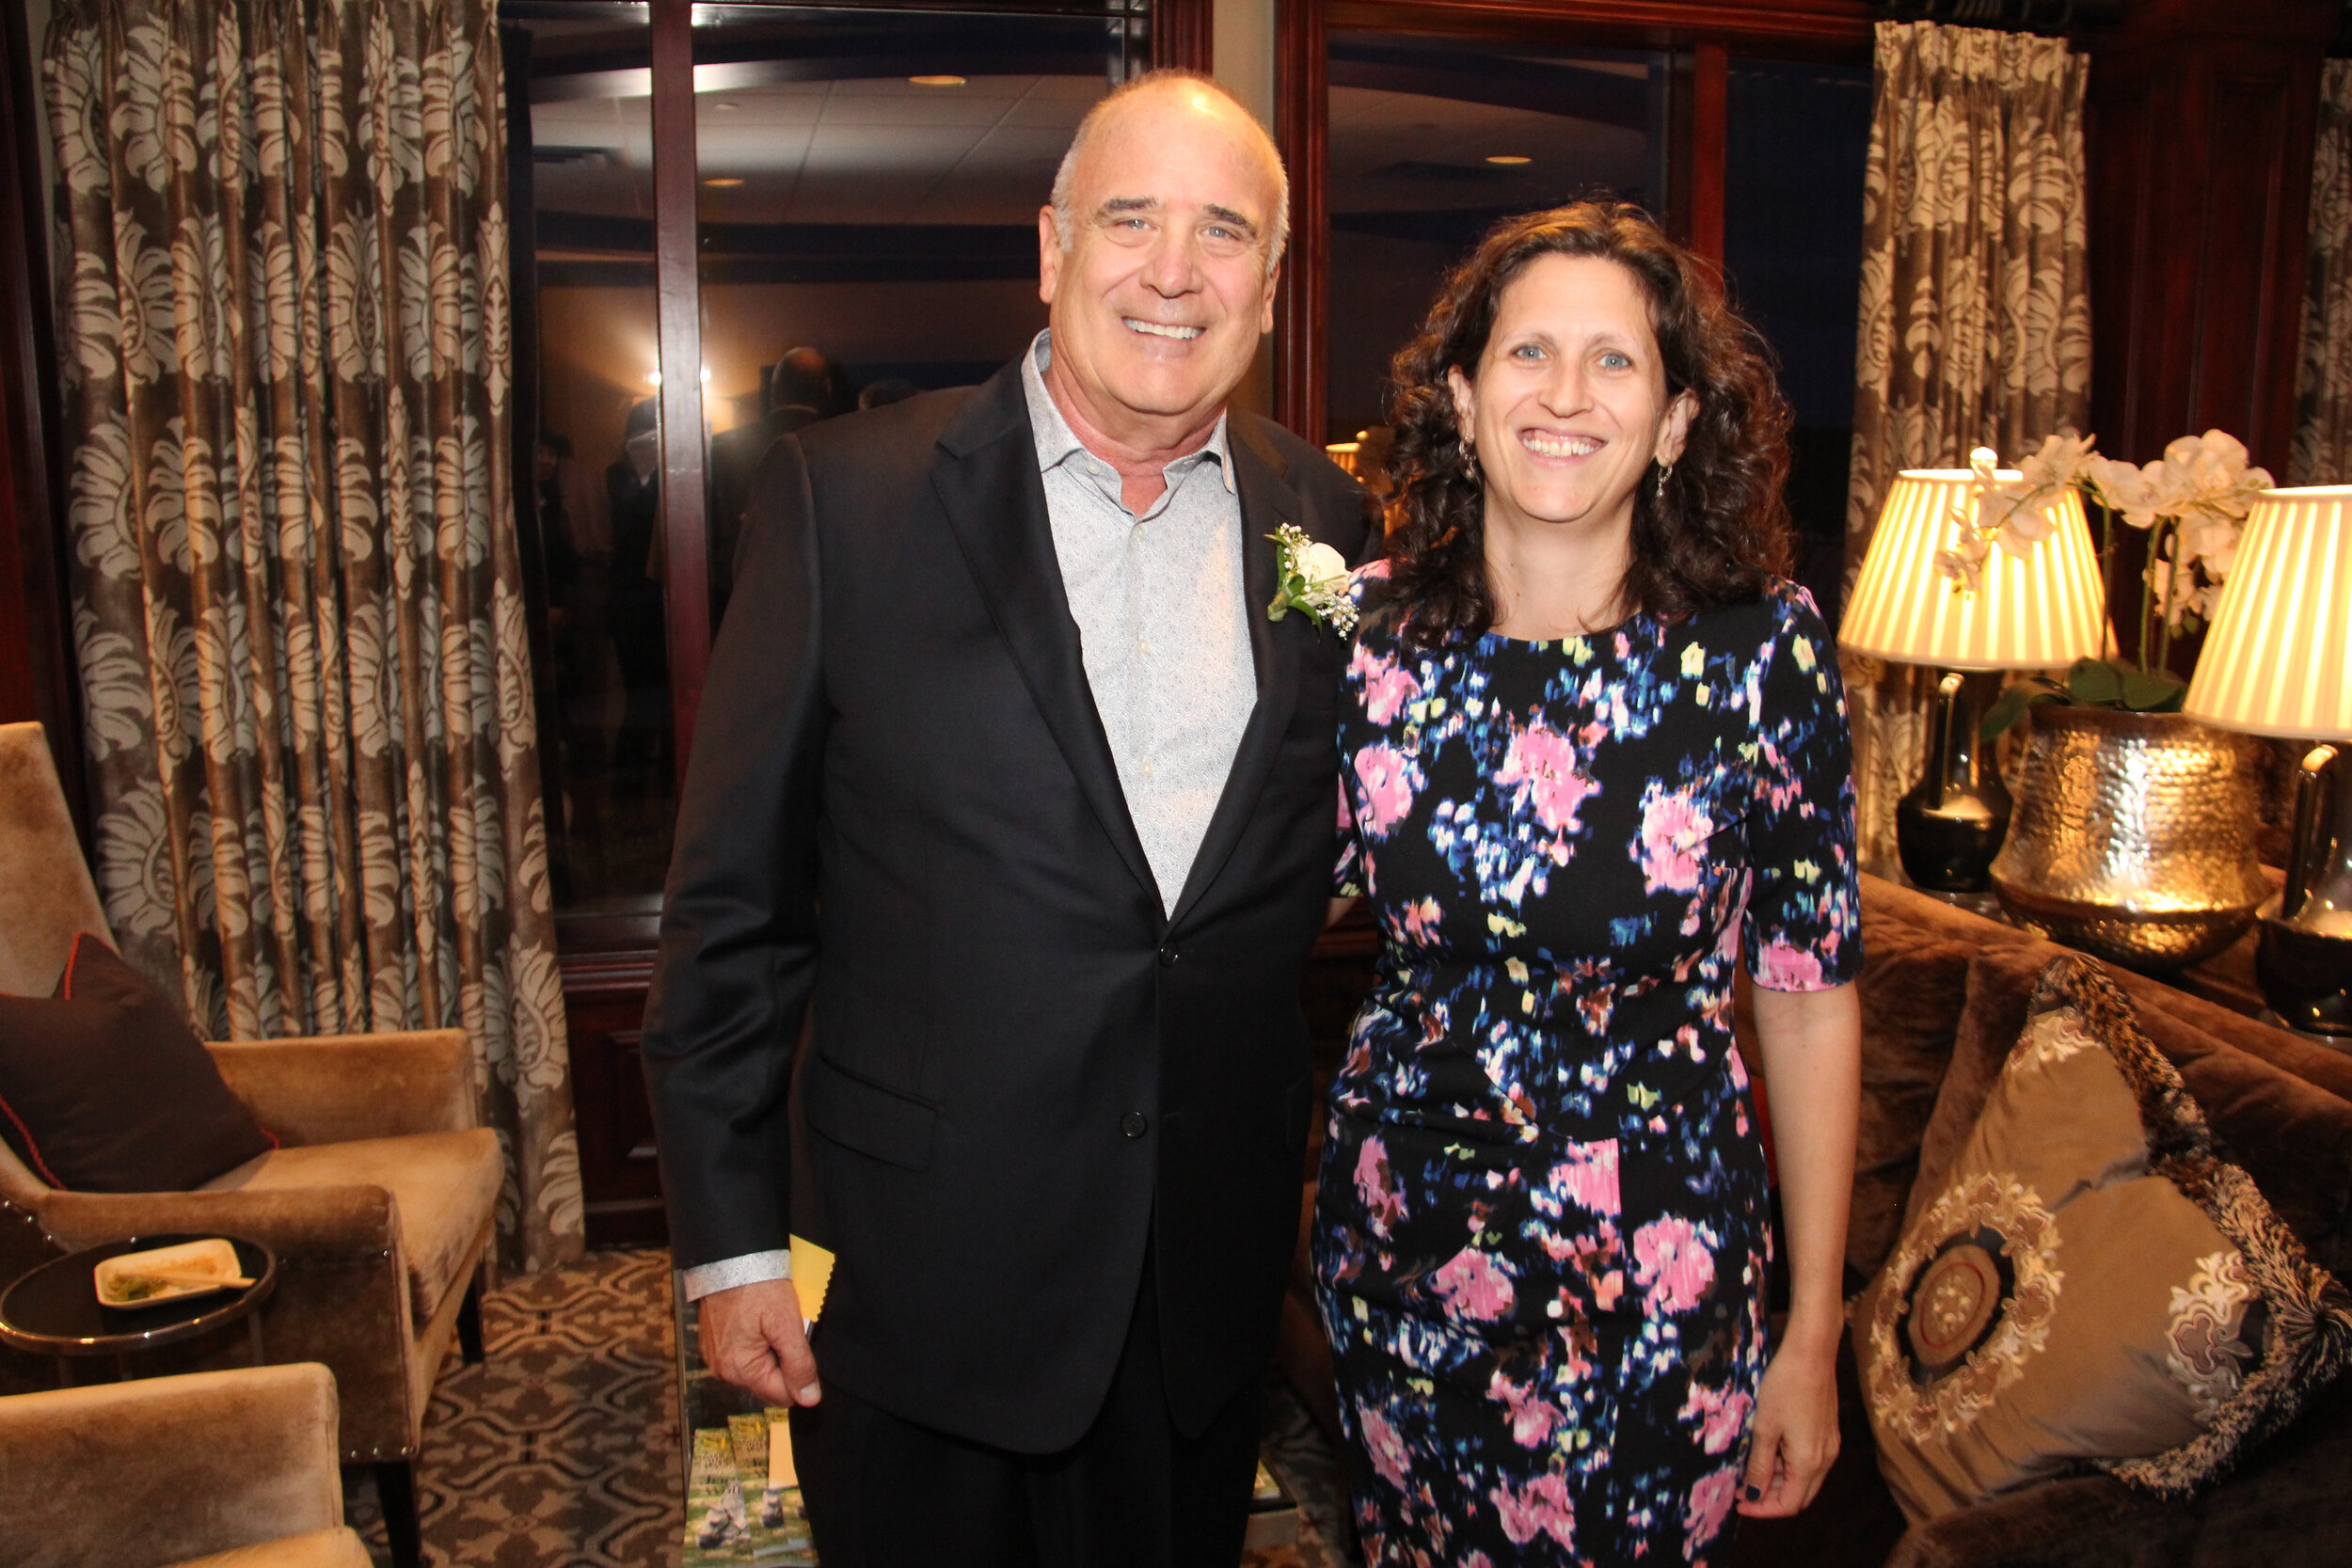 James Turnbull of Standard Ceramic Supply Company (honoree) & Emily Peck